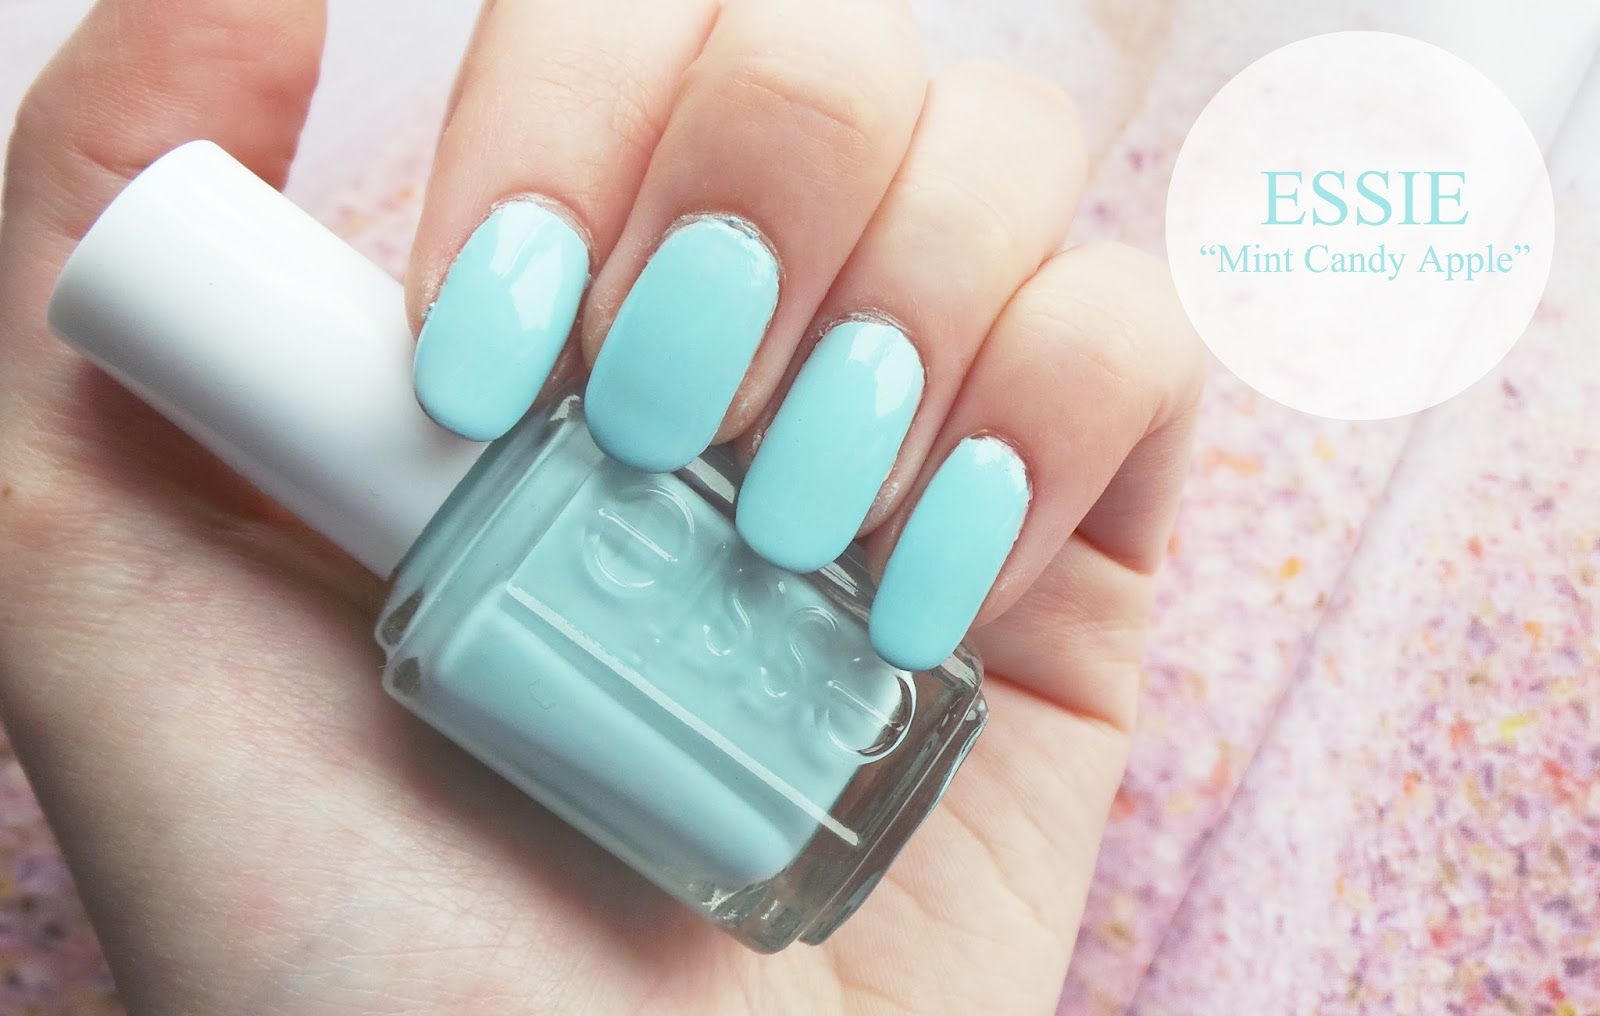 nail blog, nail blogger, nail design, nail art, uk nail blog, uk nail blogger, beauty blog, uk beauty blogger, uk fashion blog, fashion blogger, fashion blog, nail art blog, nail designs, essie, essie mint candy apple, essie mint candy apple review